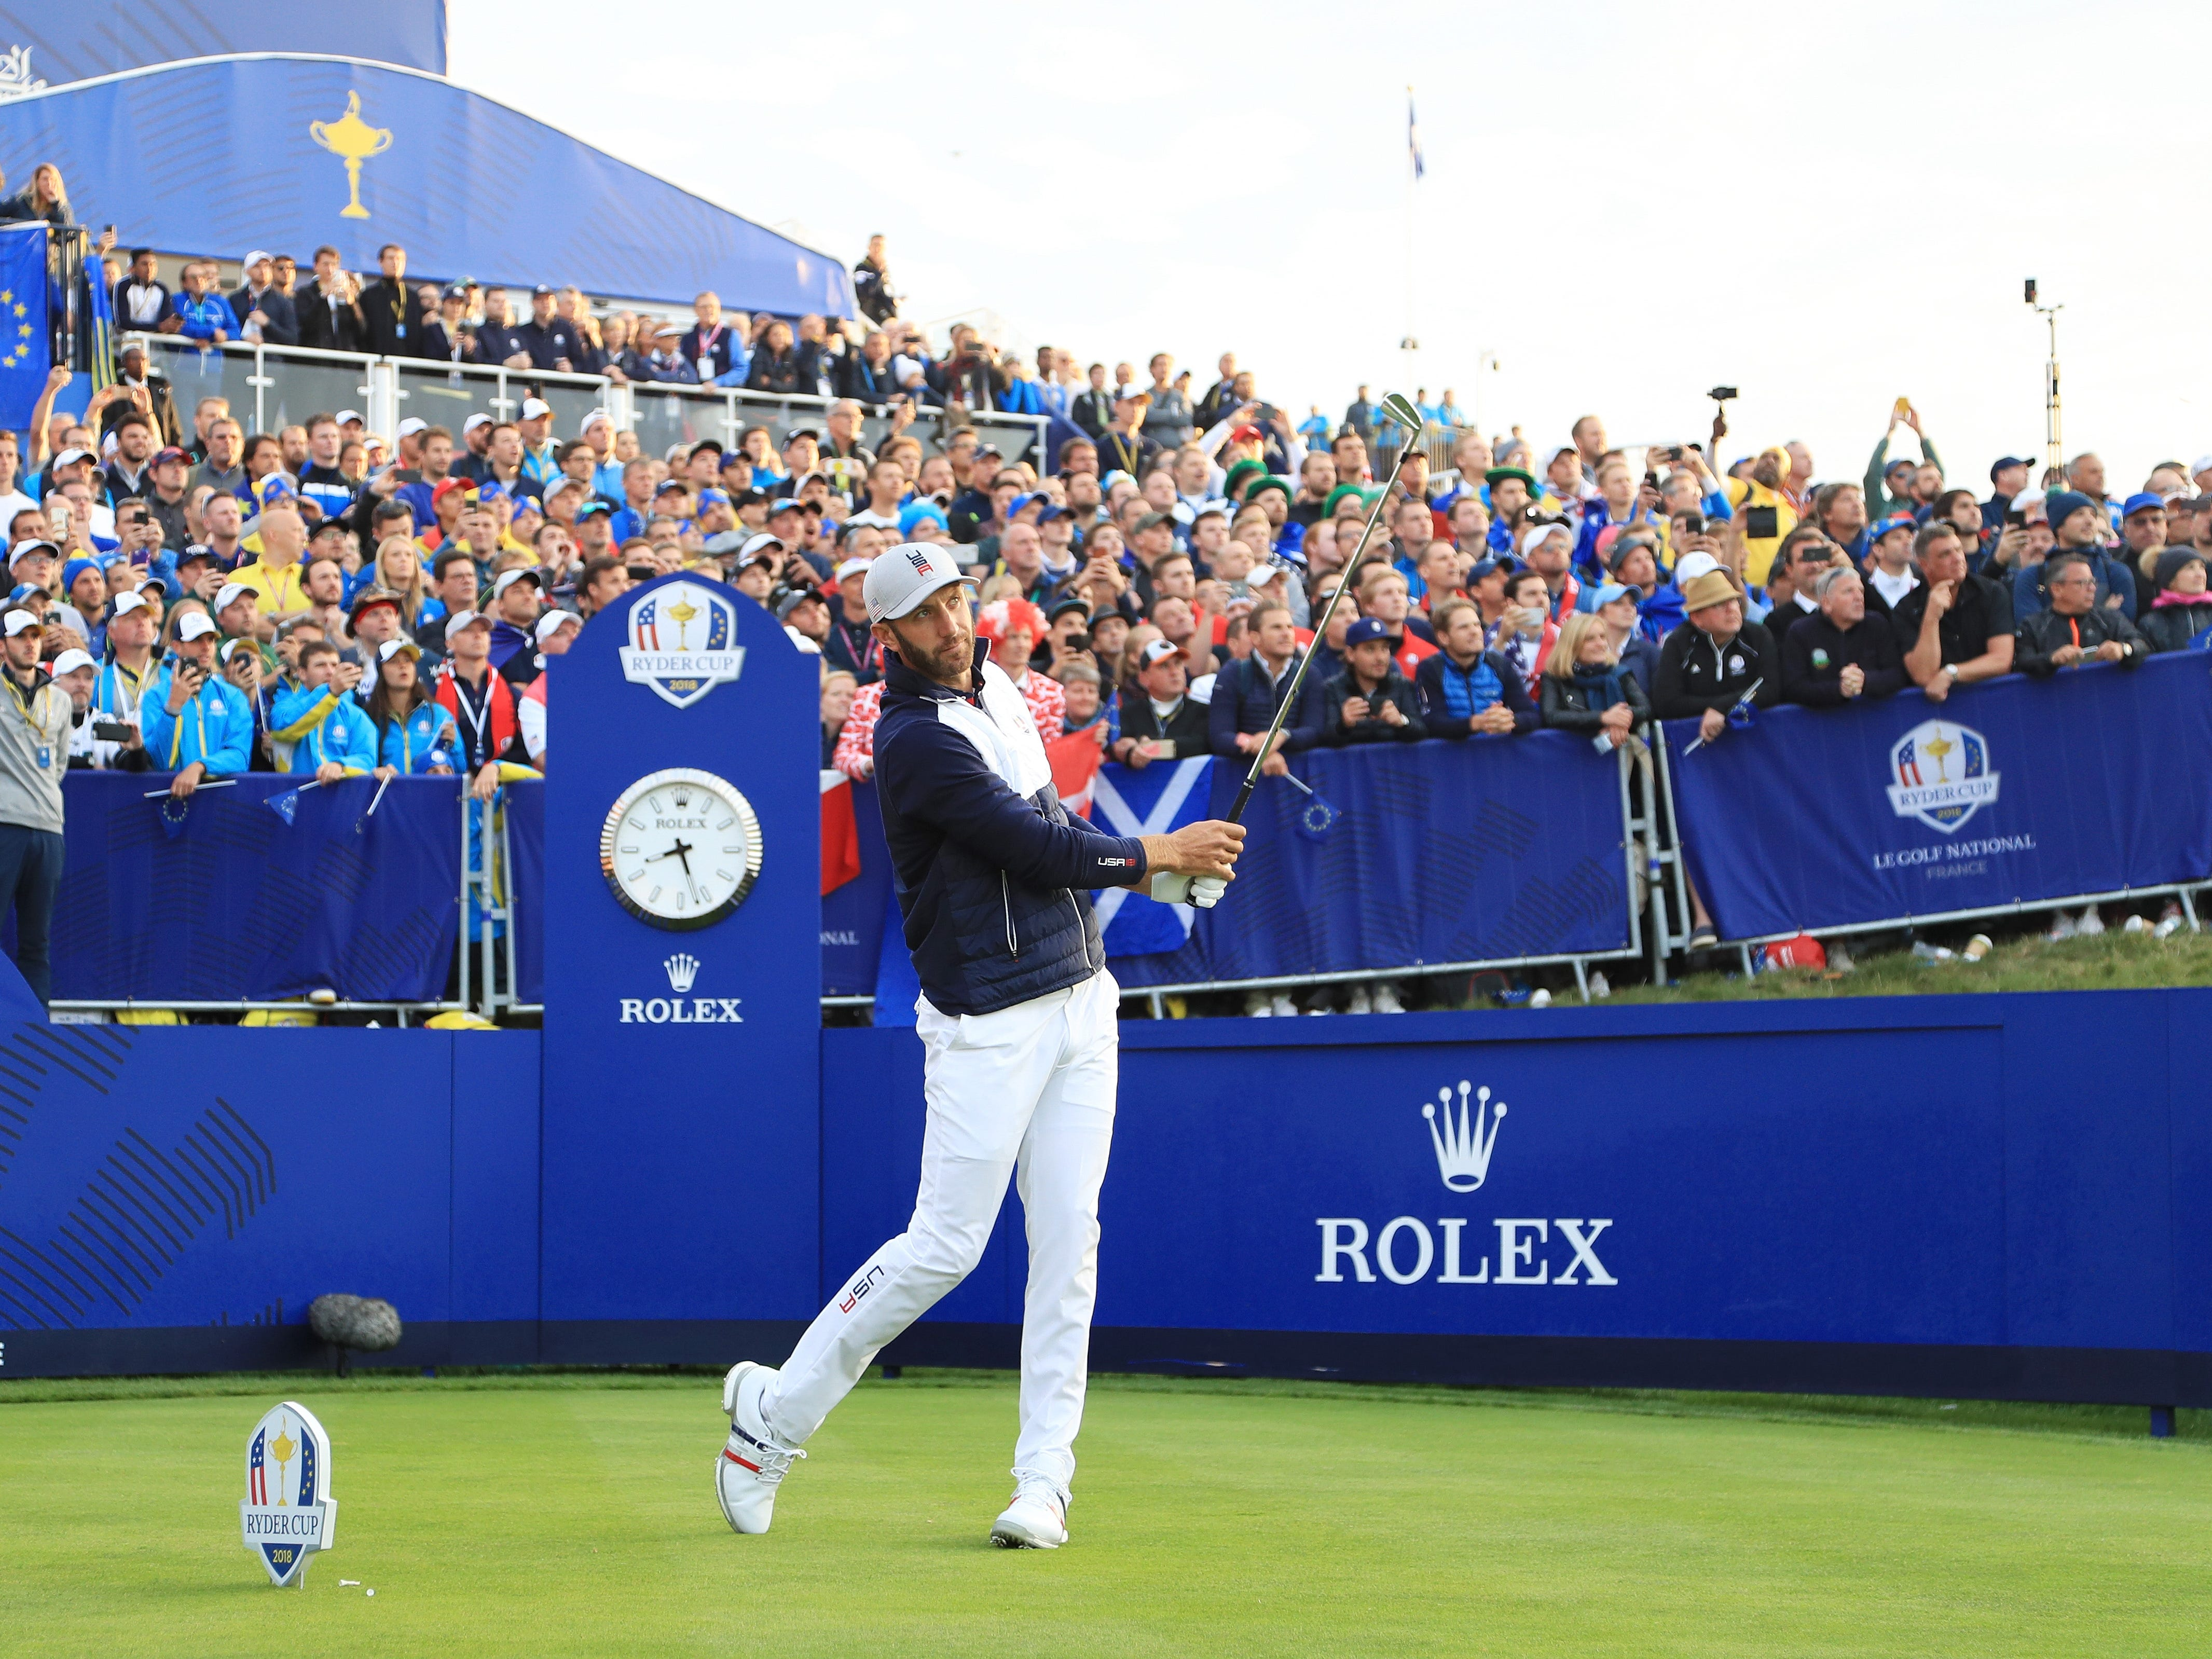 Dustin Johnson of the United States plays his shot from the first tee  during the morning fourball matches of the 2018 Ryder Cup at Le Golf National.